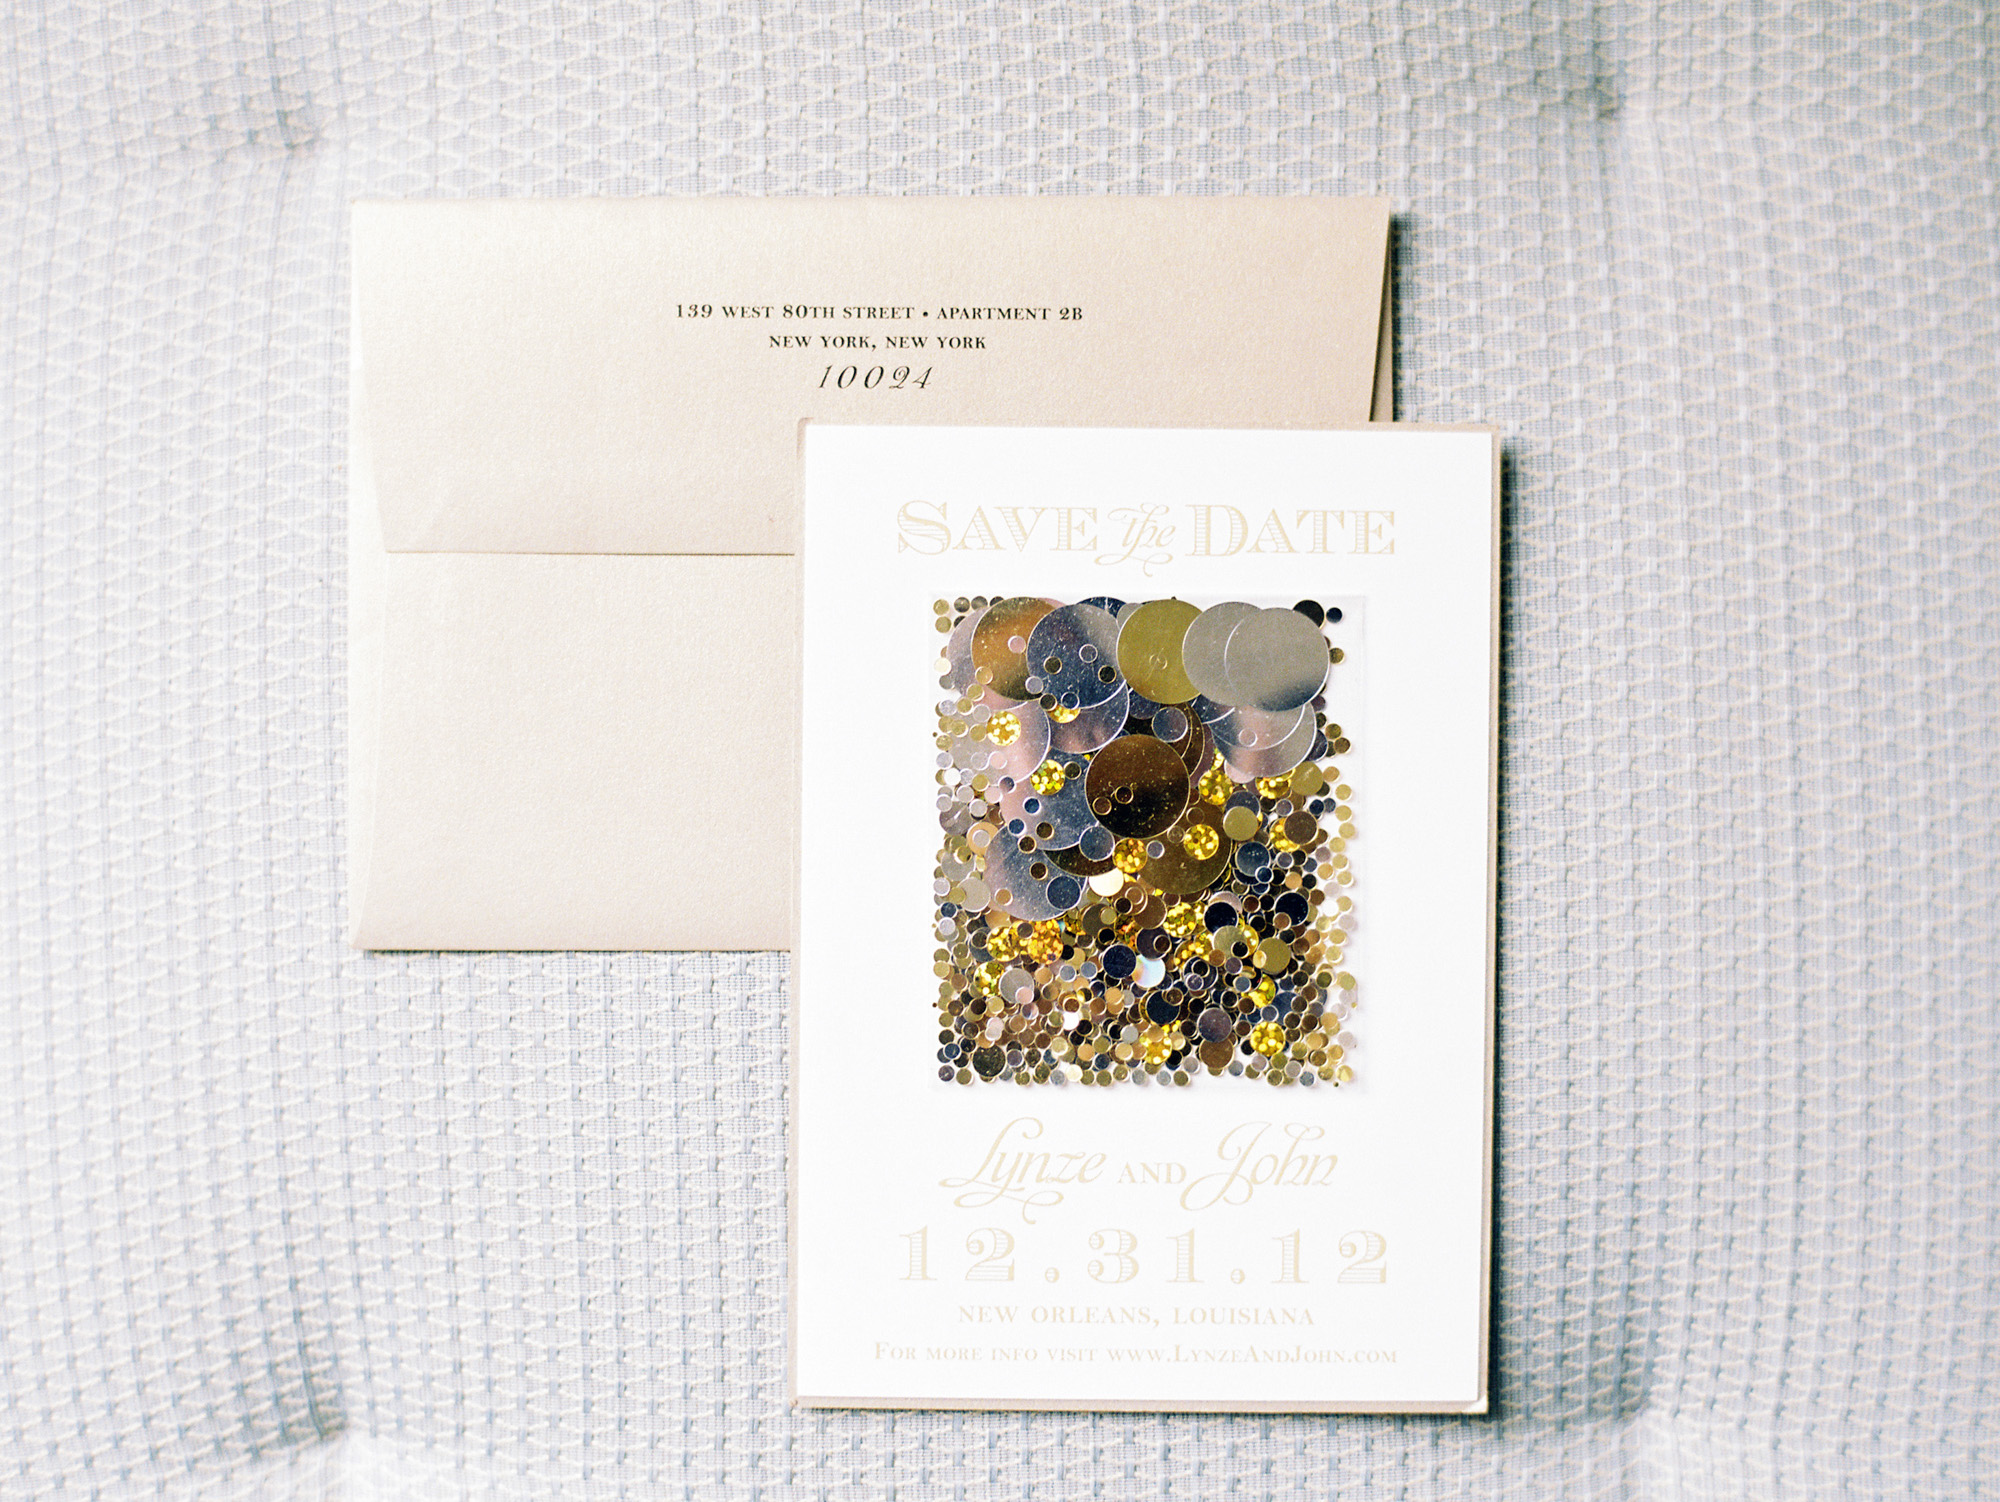 These save-the-dates were decorated with metallic confetti to give guests a preview of festivities.